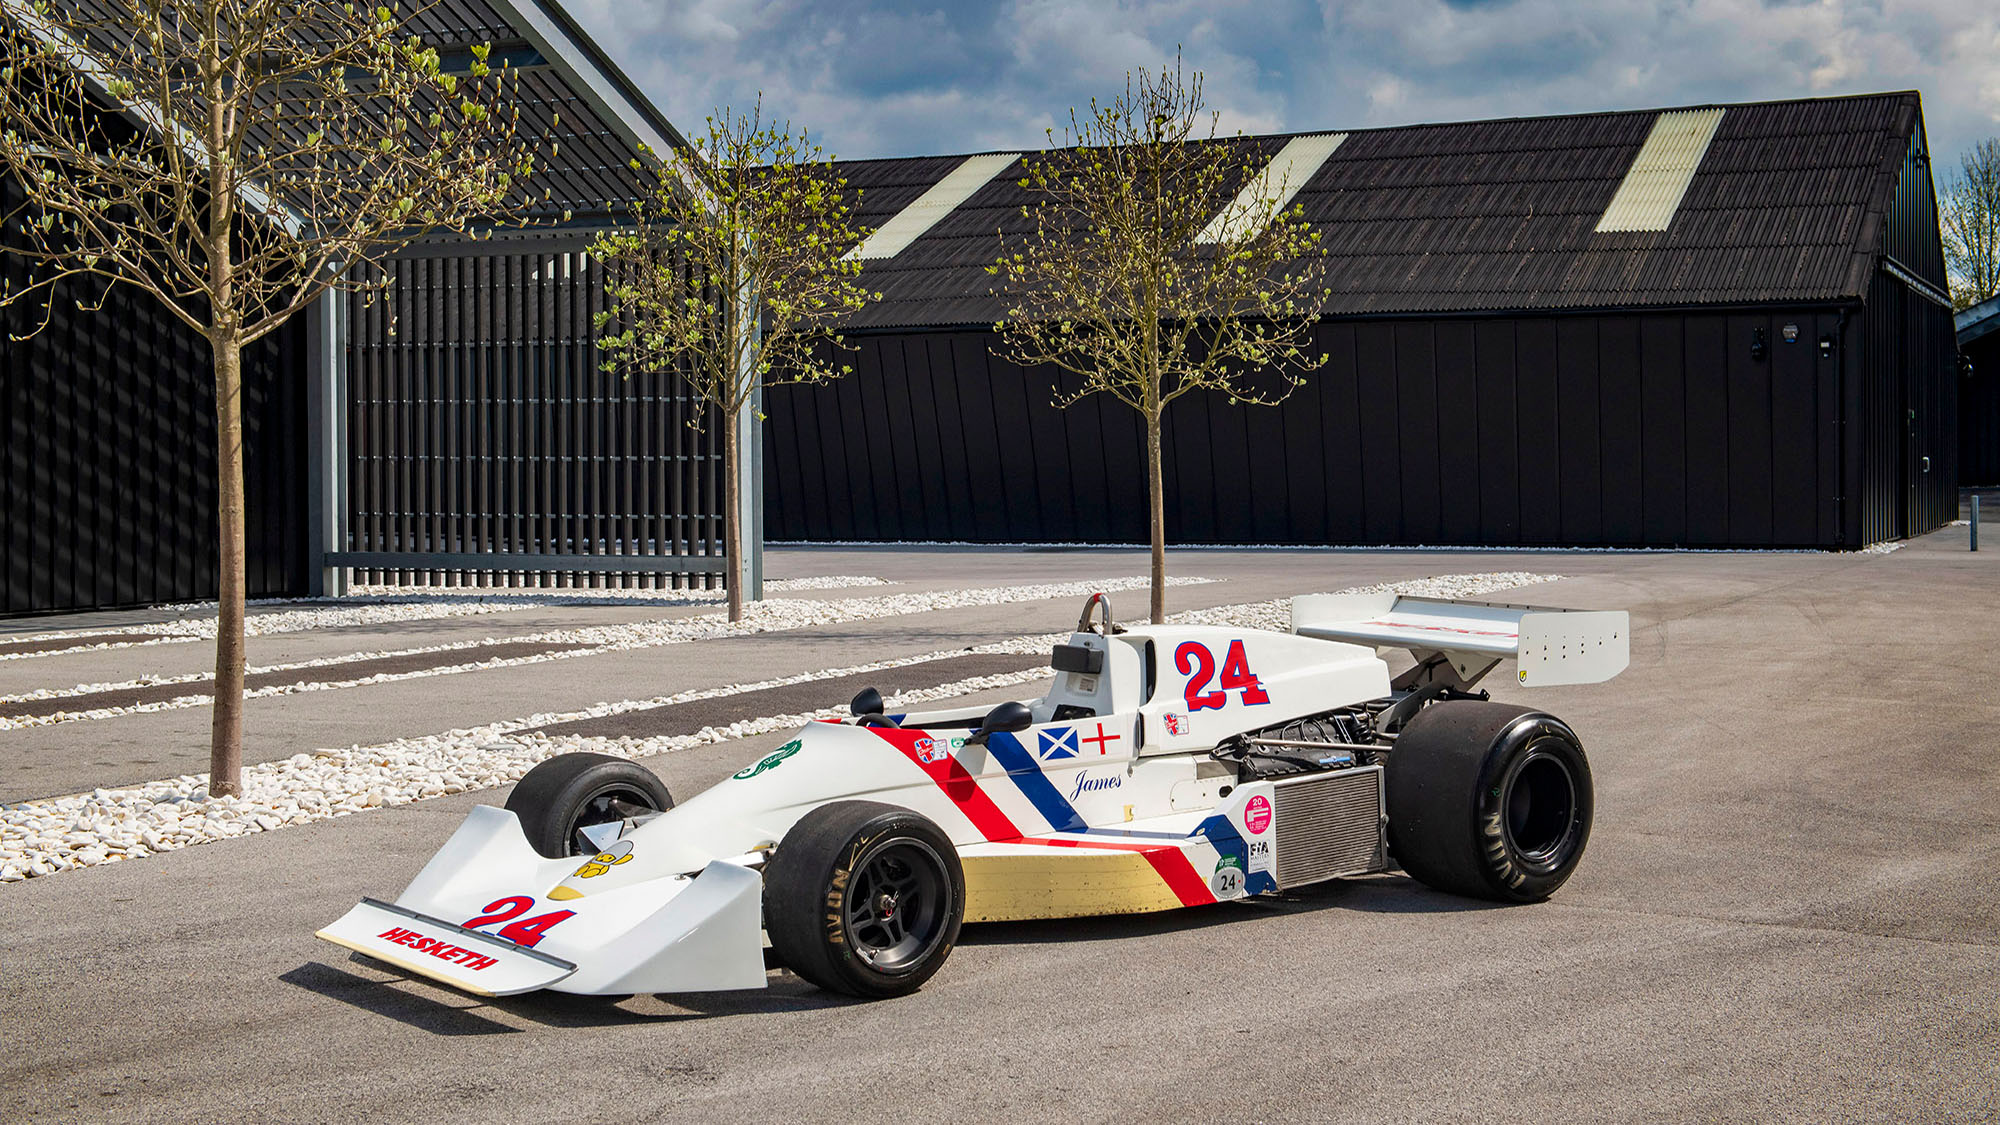 James Hunt's last Hesketh F1 car sells 45 years after its final race